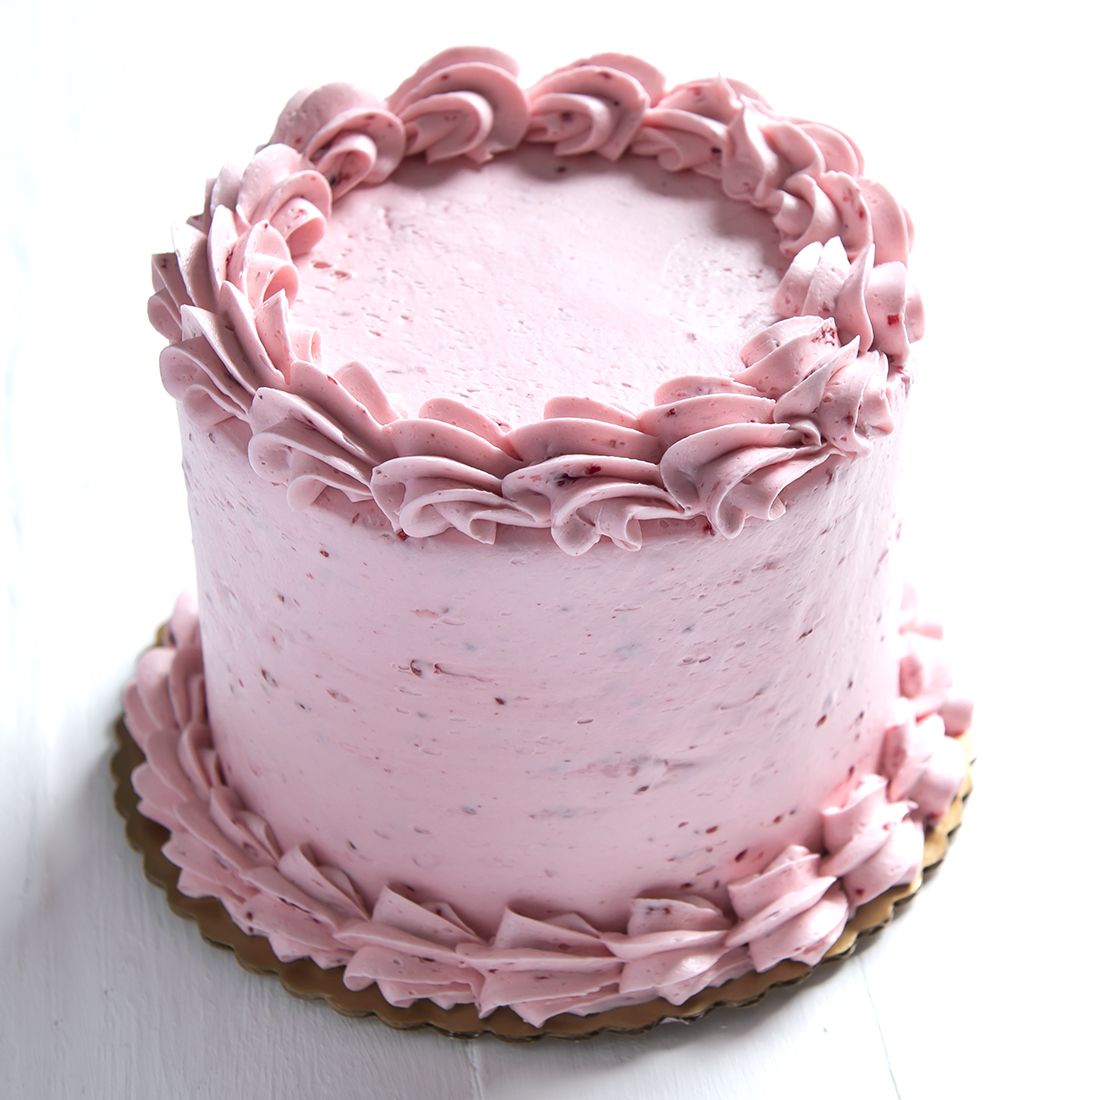 Raspberry Almond - Almond cake filled and frosted with raspberry buttercream frosting6